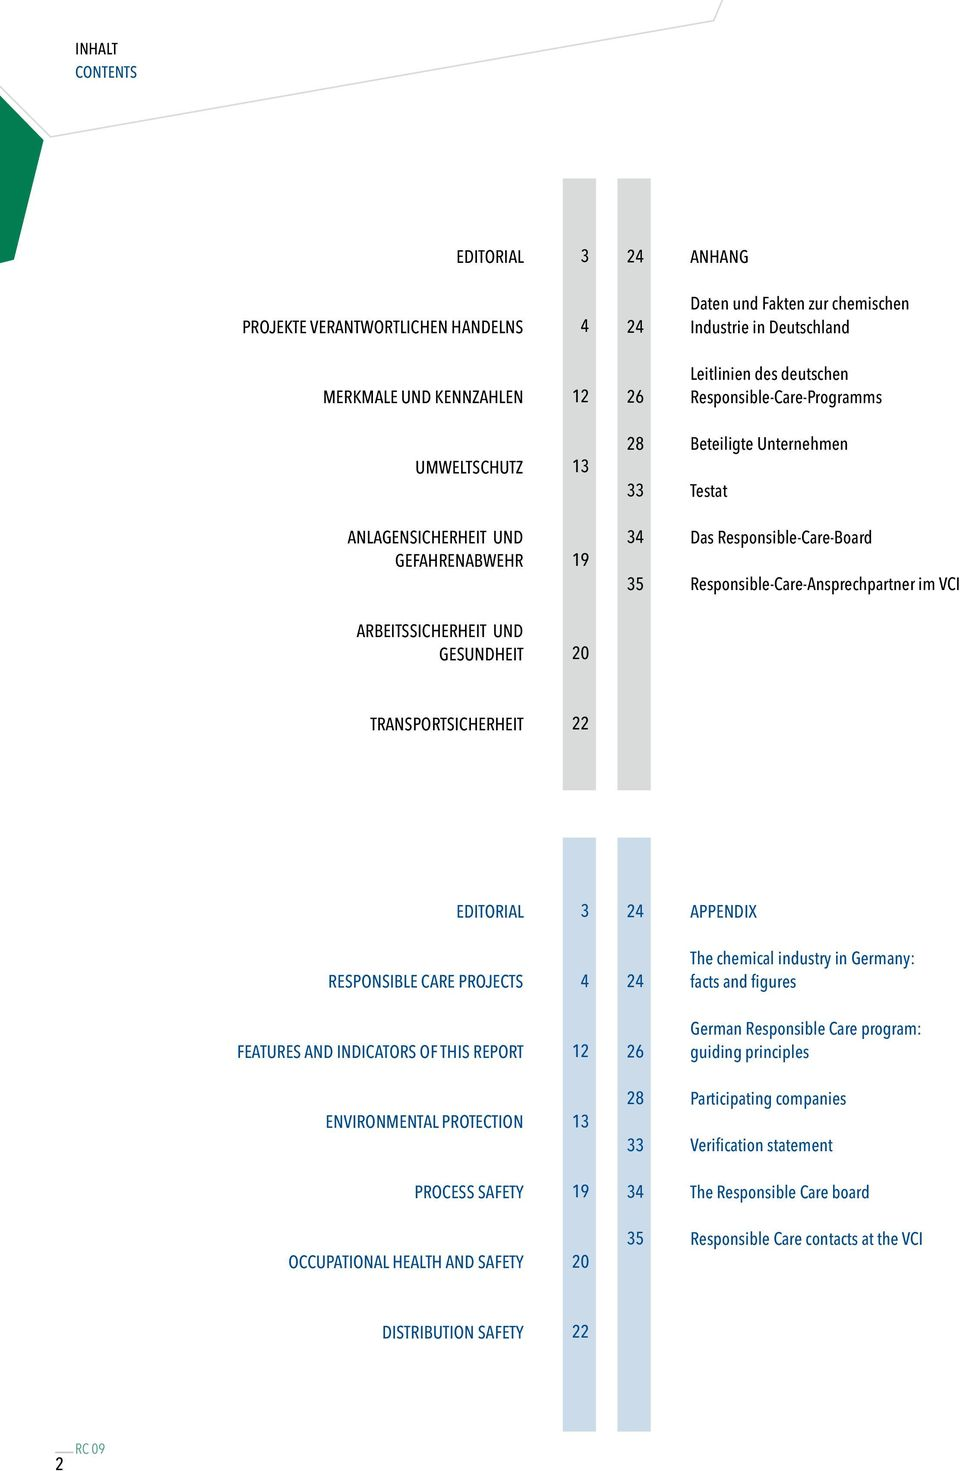 ARBEITSSICHERHEIT UND GESUNDHEIT 20 Transportsicherheit 22 EDITORIAL 3 24 APPENDIX RESPONSIBLE CARE PROJECTS 4 24 The chemical industry in Germany: facts and figures FEATURES AND INDICATORS OF THIS